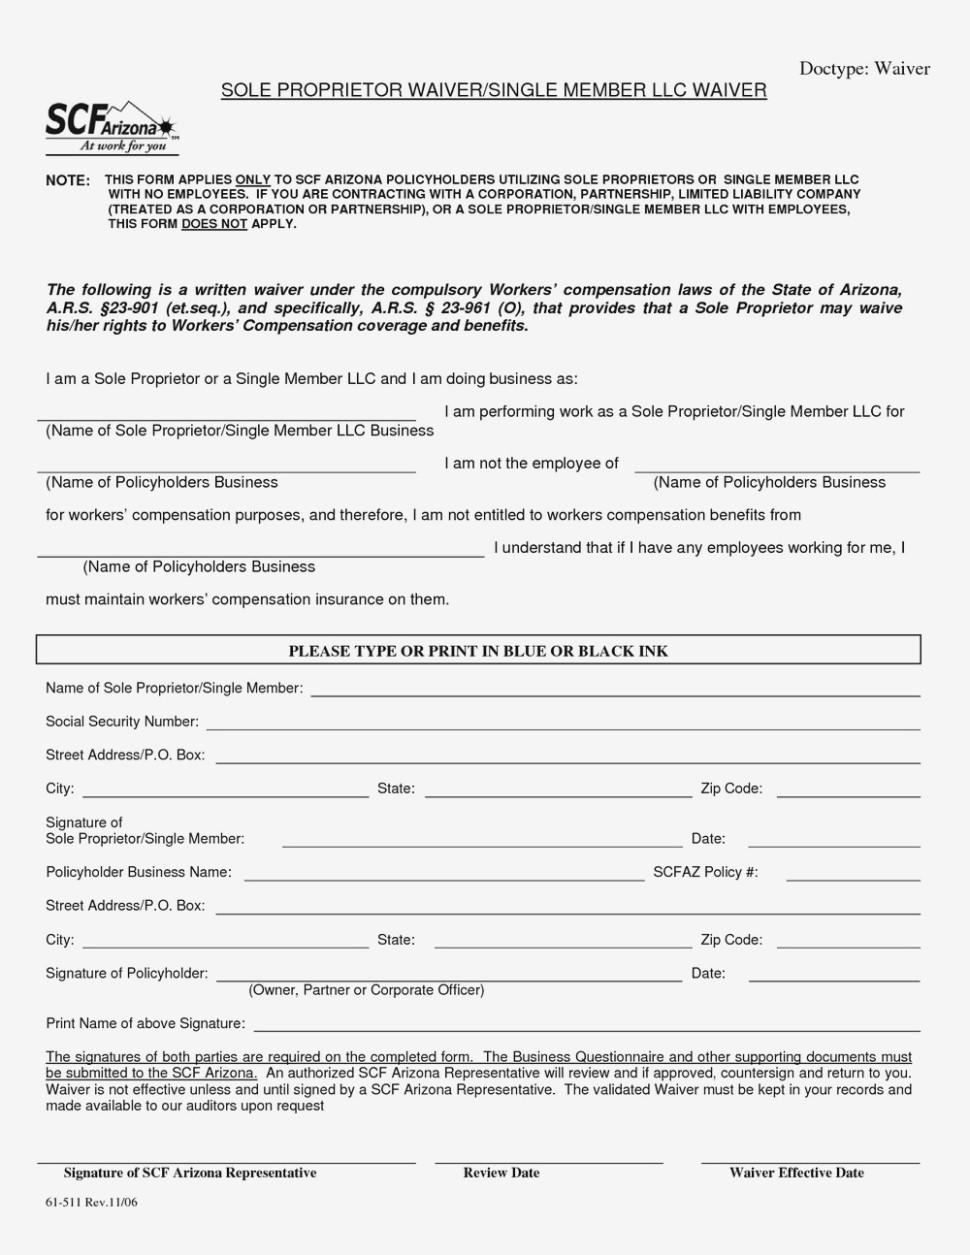 Workers Compensation Waiver Form For Independent Contractors Arizona